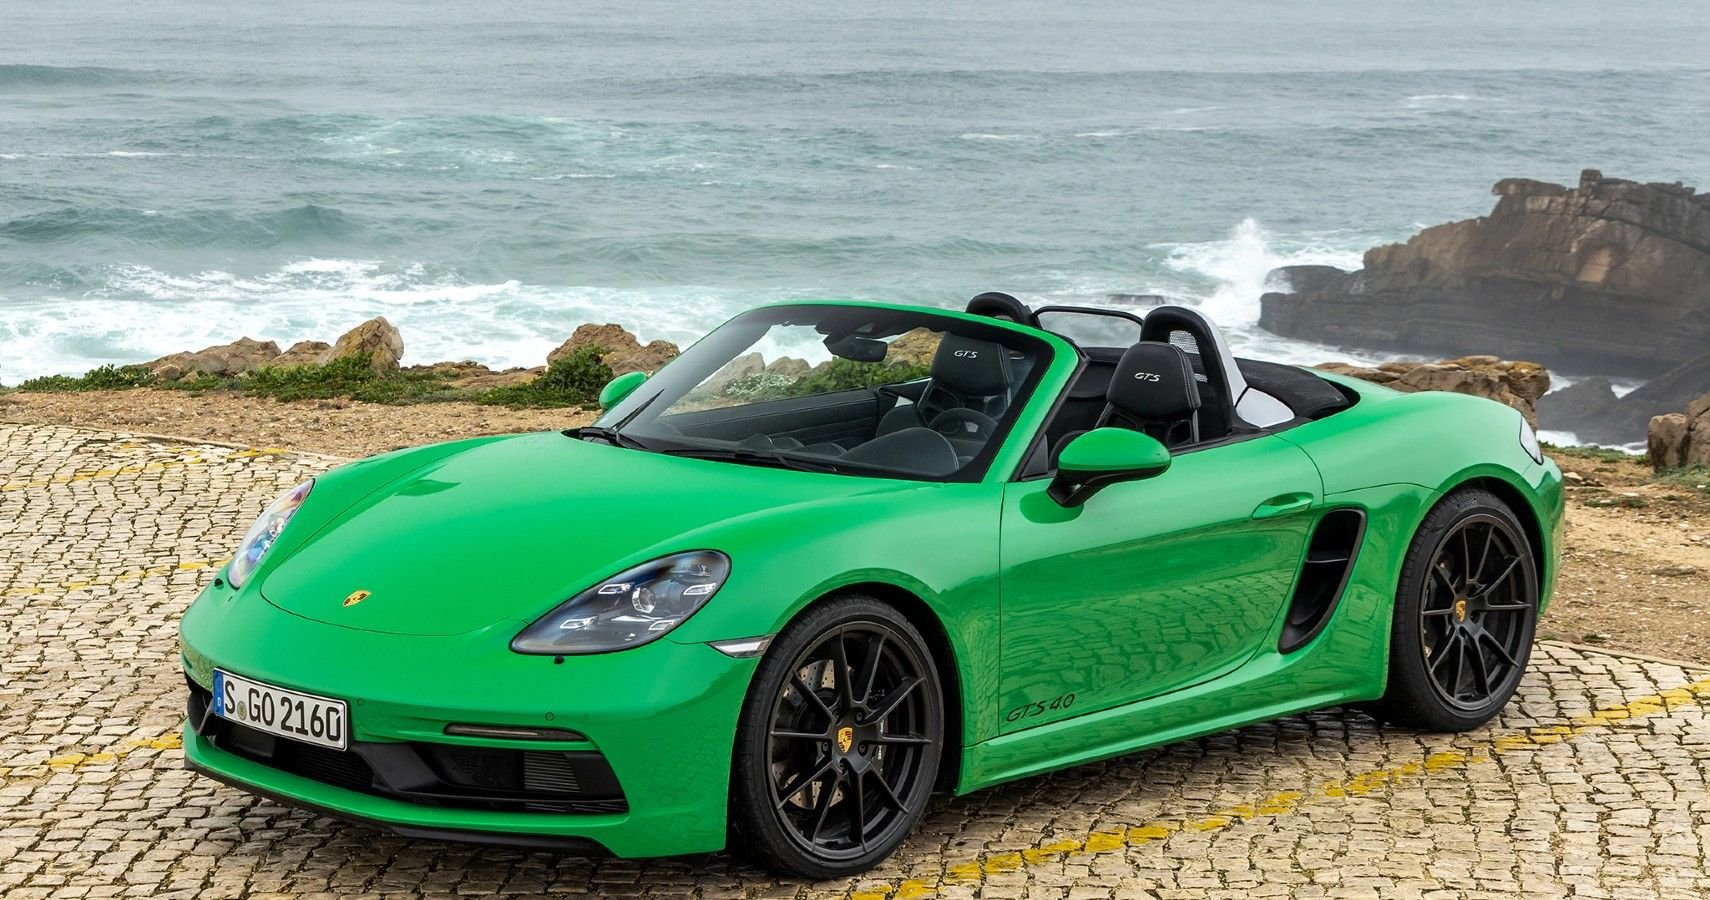 Porsche Releases Hot Details On The New 718 Cayman, Boxster